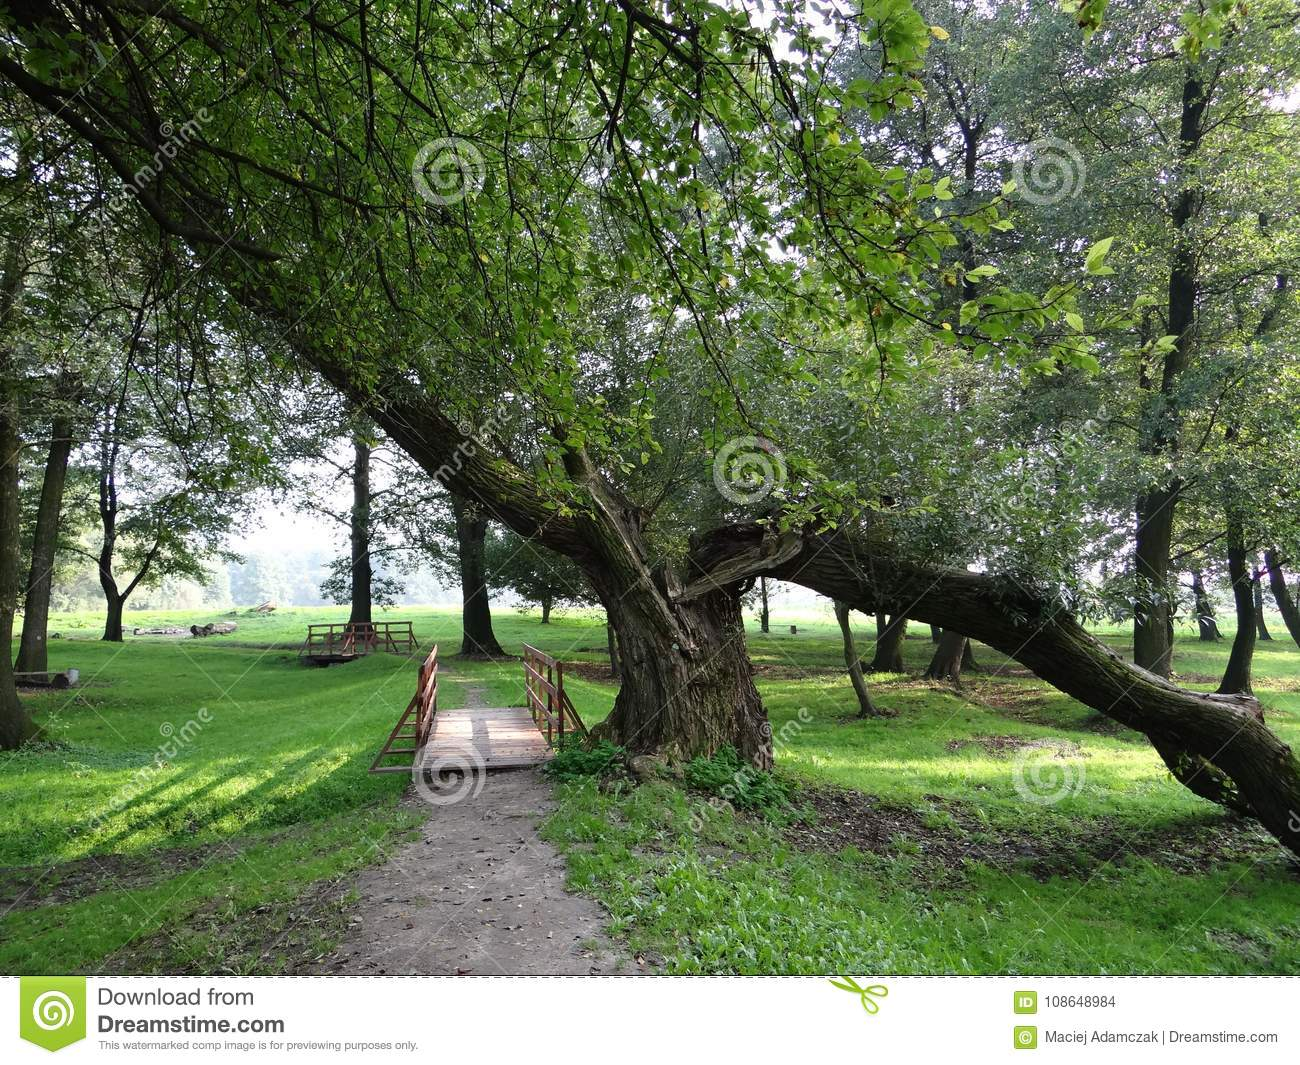 Slanted tree in a green park